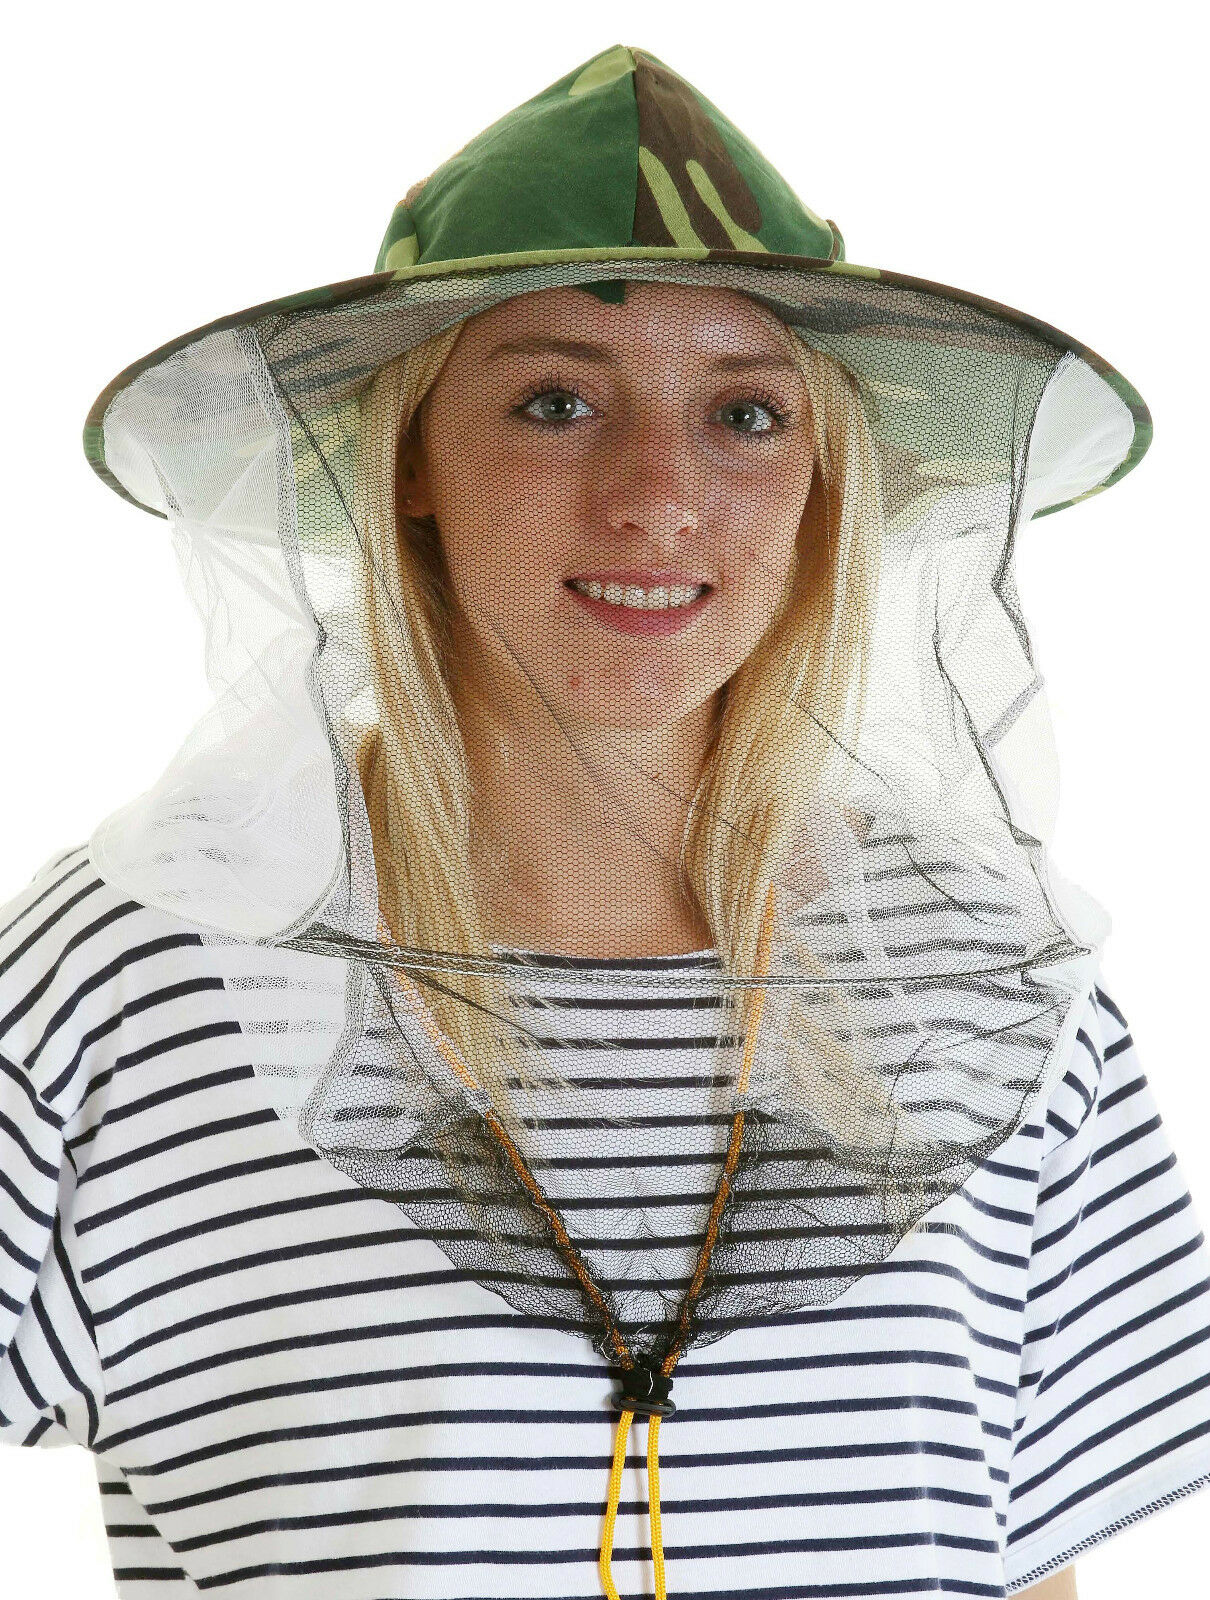 5 x Beekeeping CAMOUFLAGE BEE HAT AND VEILS - Double hoop and toggle